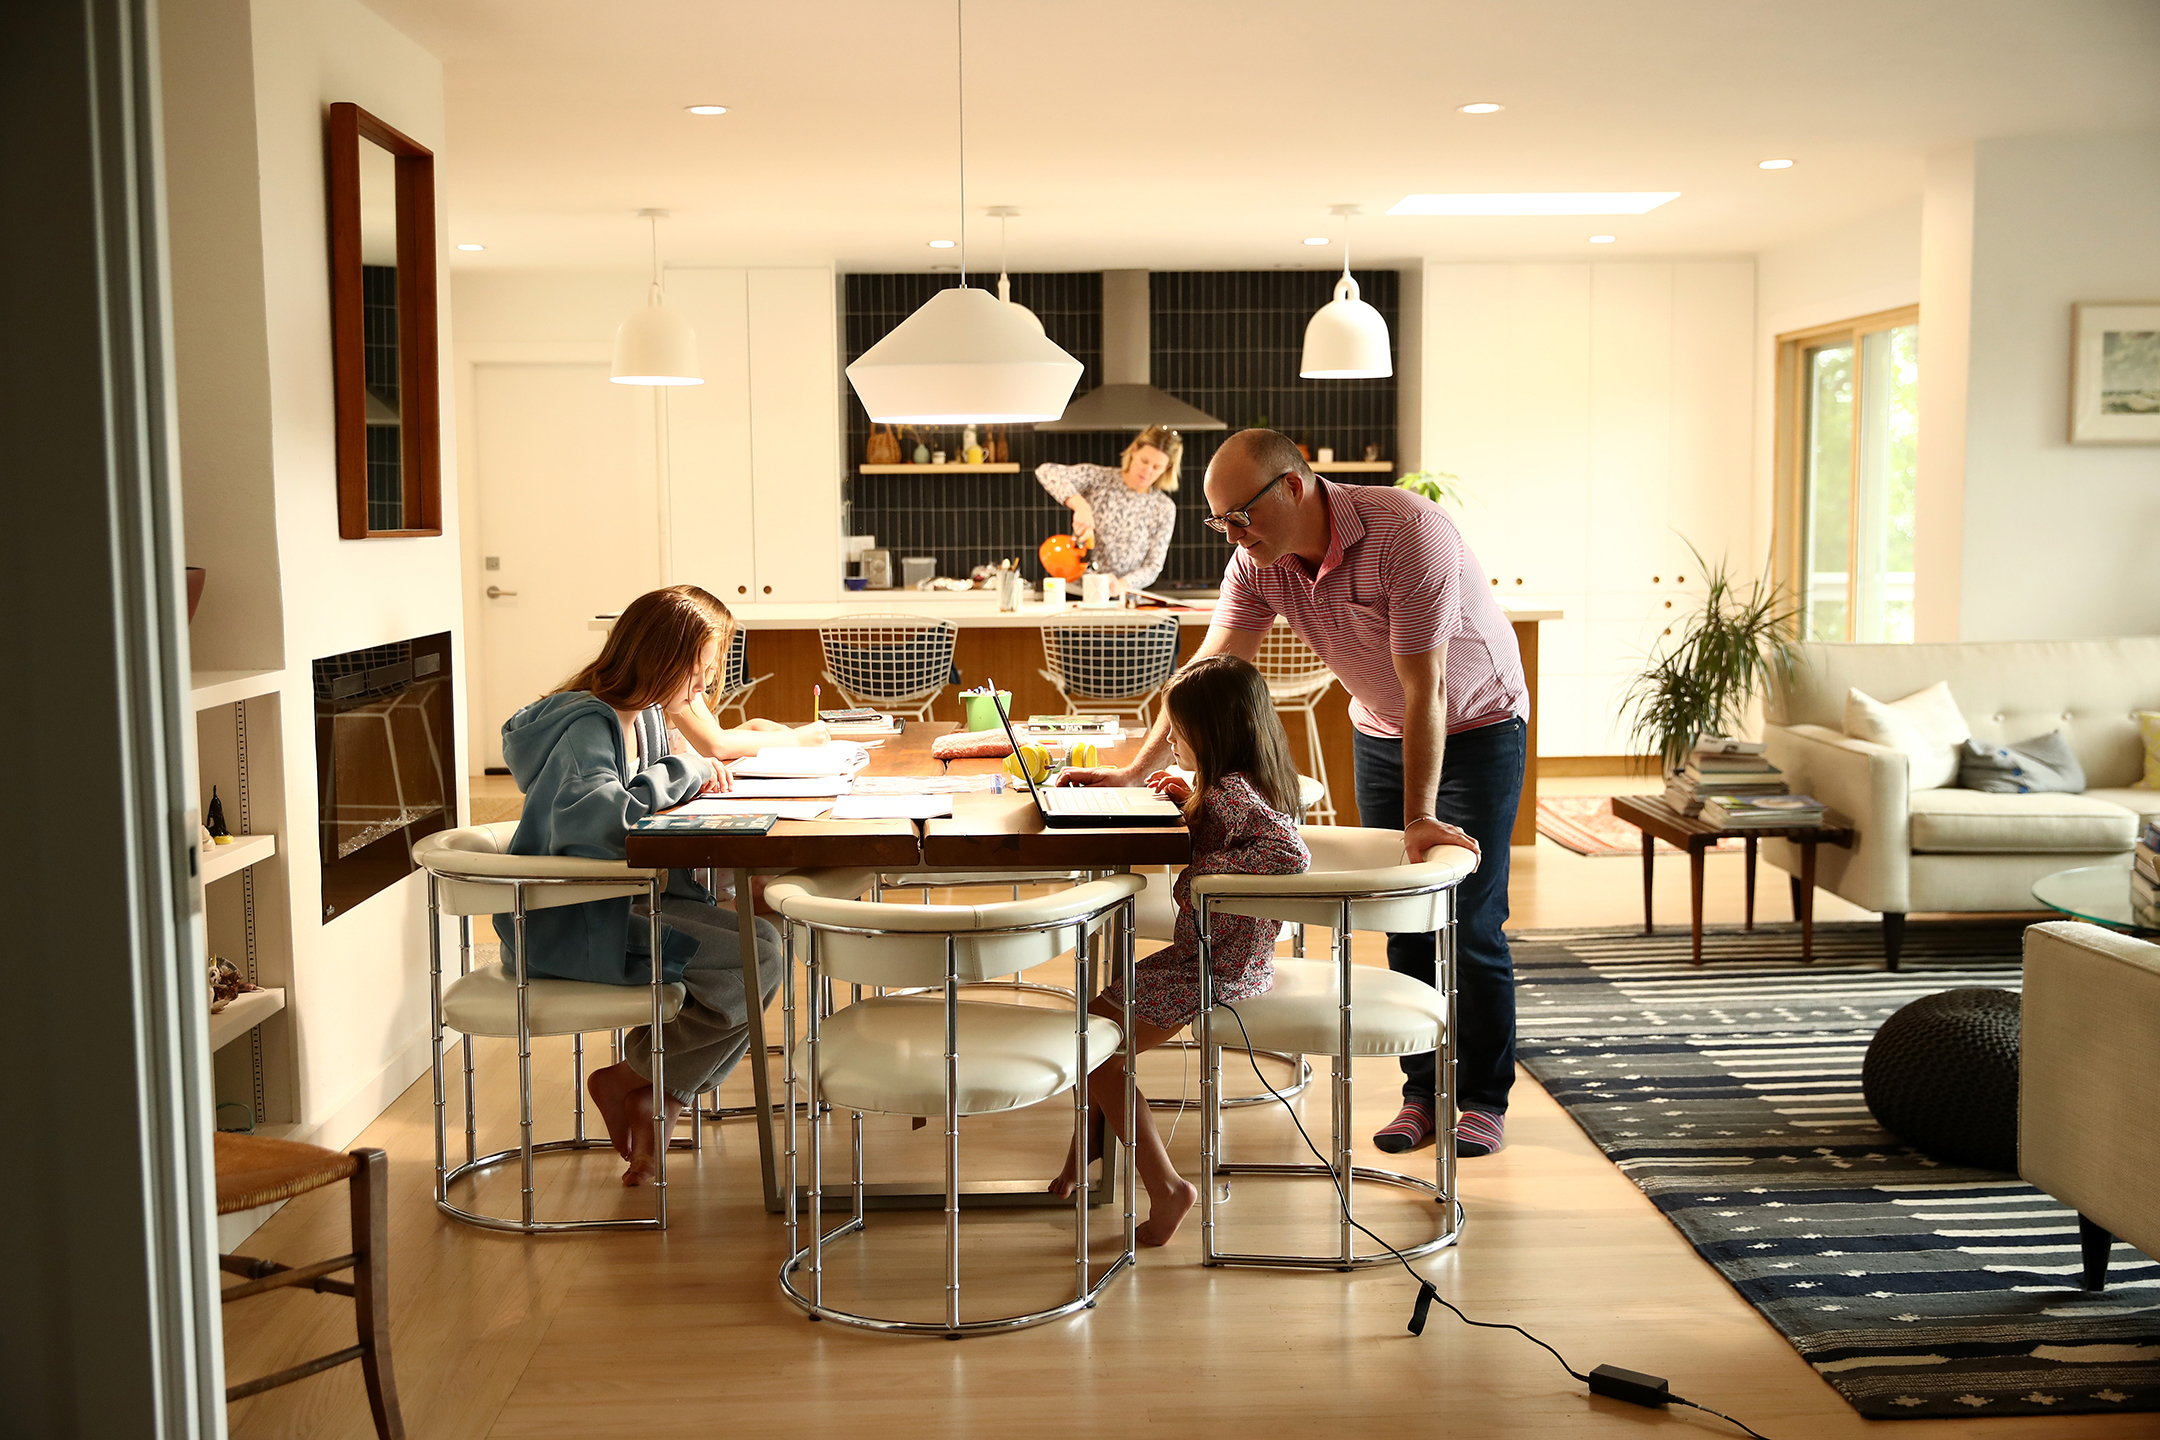 a father stands while he helps his three daughters, sitting at a large table, with their homework